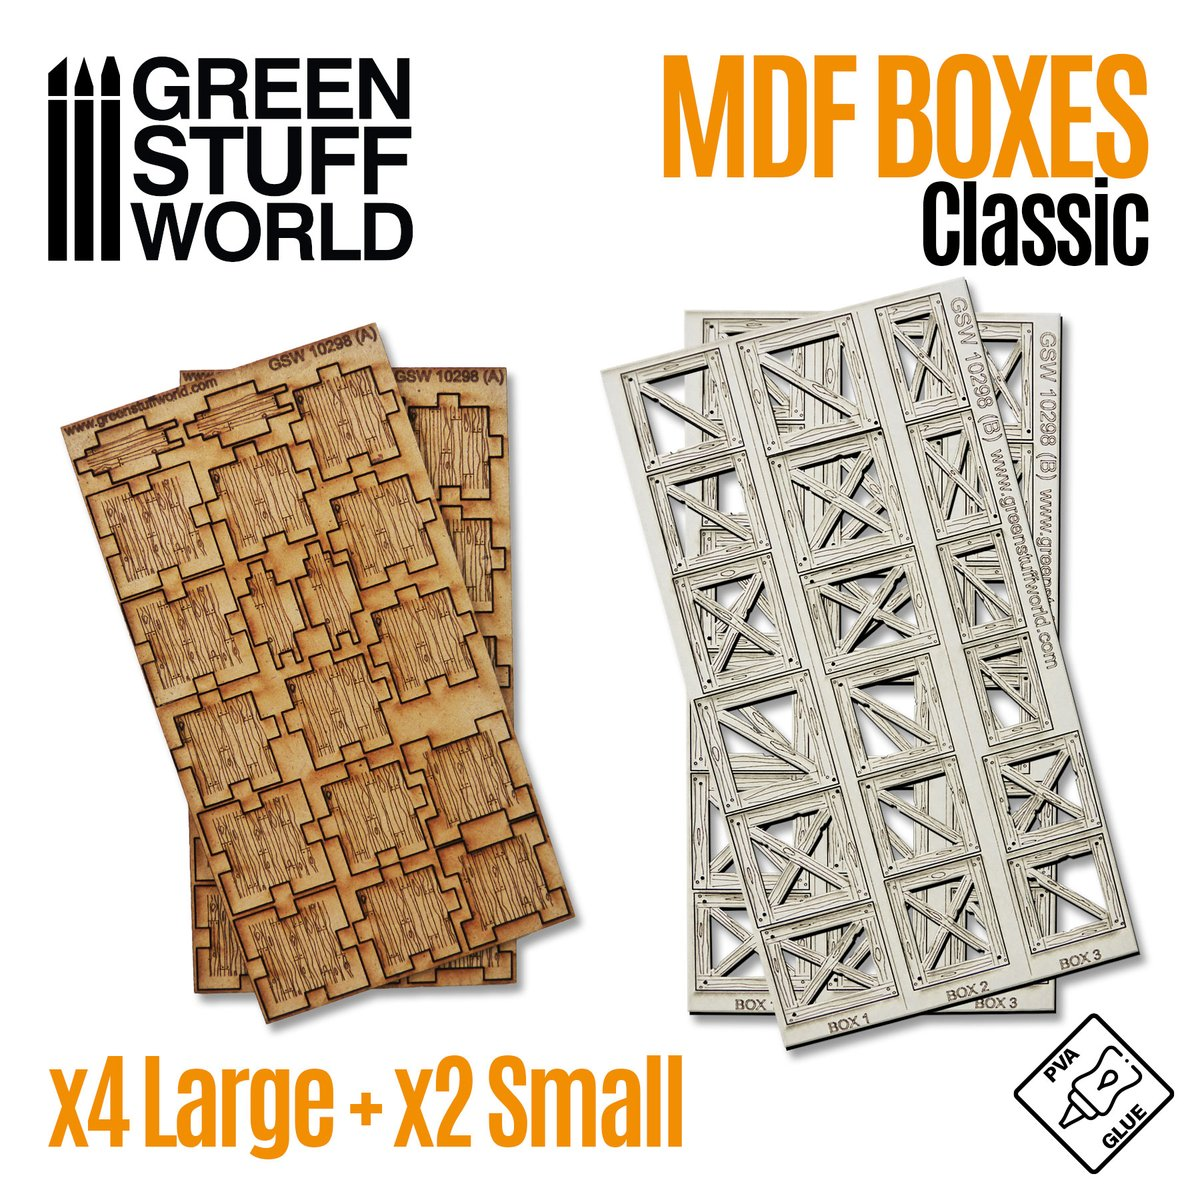 Wooden boxes made of a combination of high quality MDF wood and extra hard cardboard, laser cut with precision.  https://t.co/nBBuk3sPhC #wargames #warmongers #WarhammerCommunity https://t.co/bhcwgm4vSa